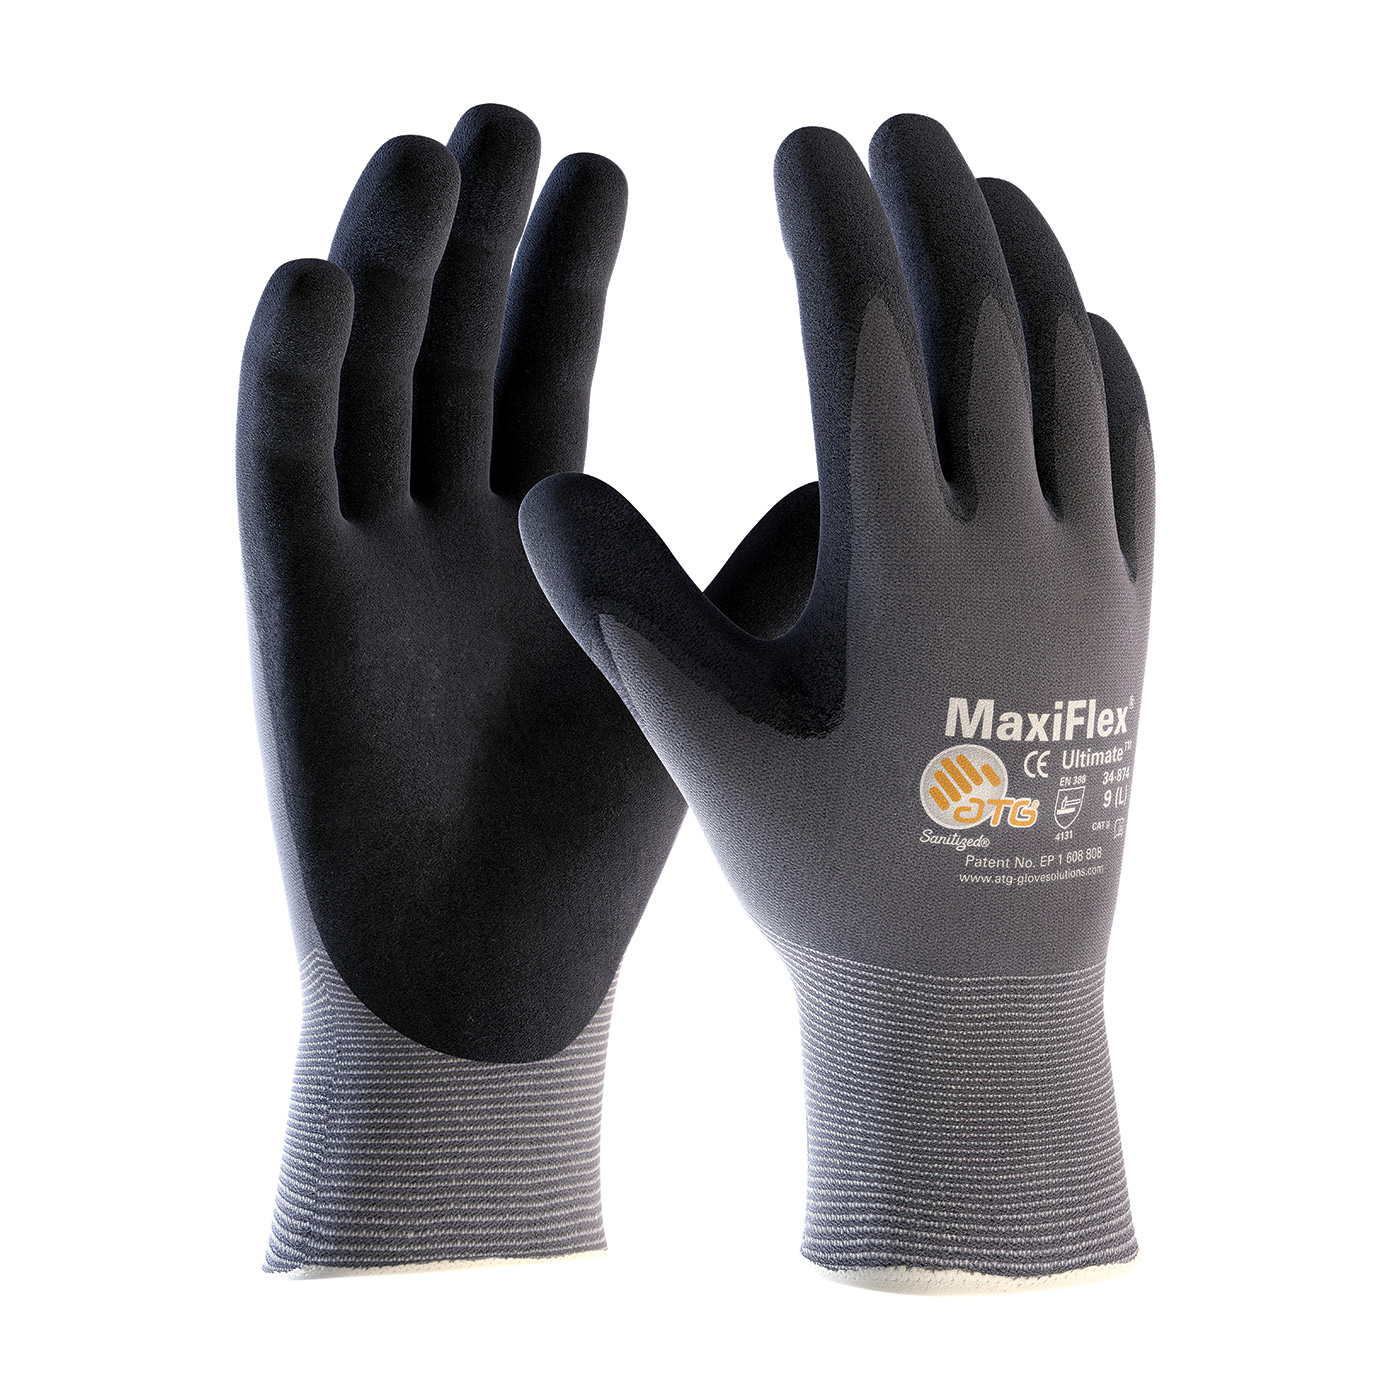 34-874 PIP® MaxiFlex® Ultimate™ Seamless Knit Nylon / Lycra Glove with Nitrile Coated MicroFoam Grip on fingertips and palm